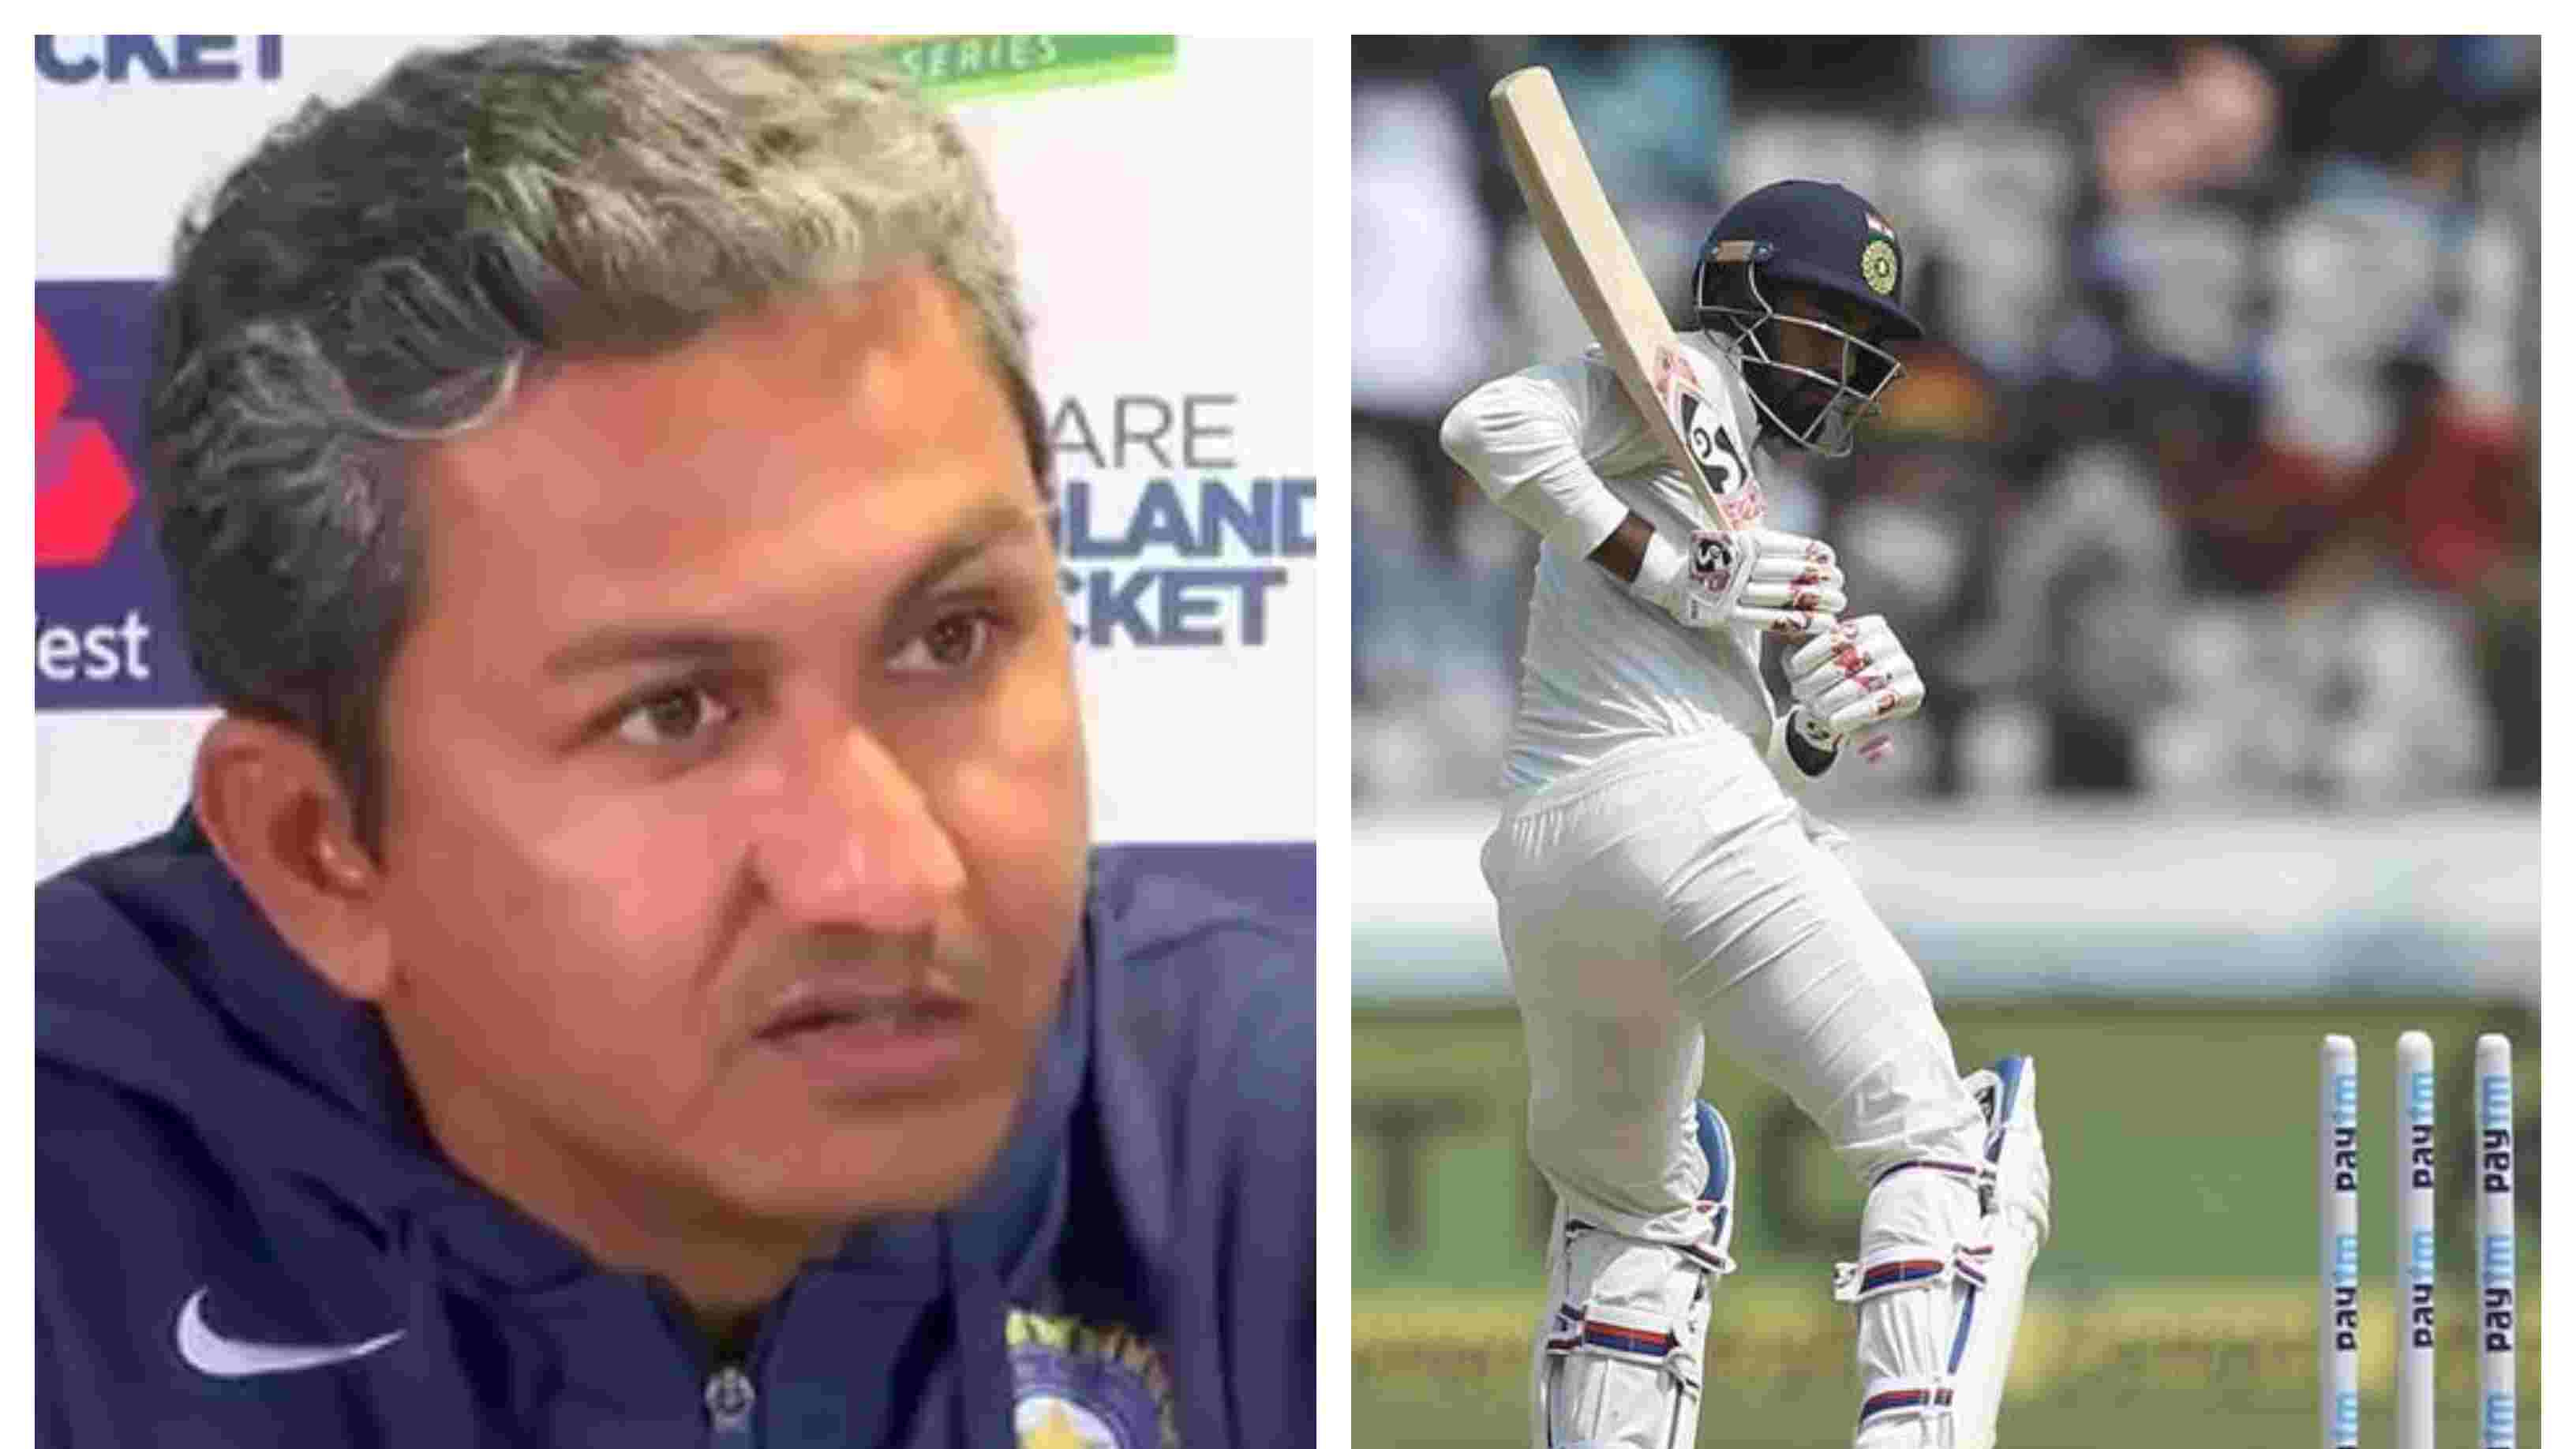 IND v WI 2018: Sanjay Bangar comes out in support of the under-fire KL Rahul